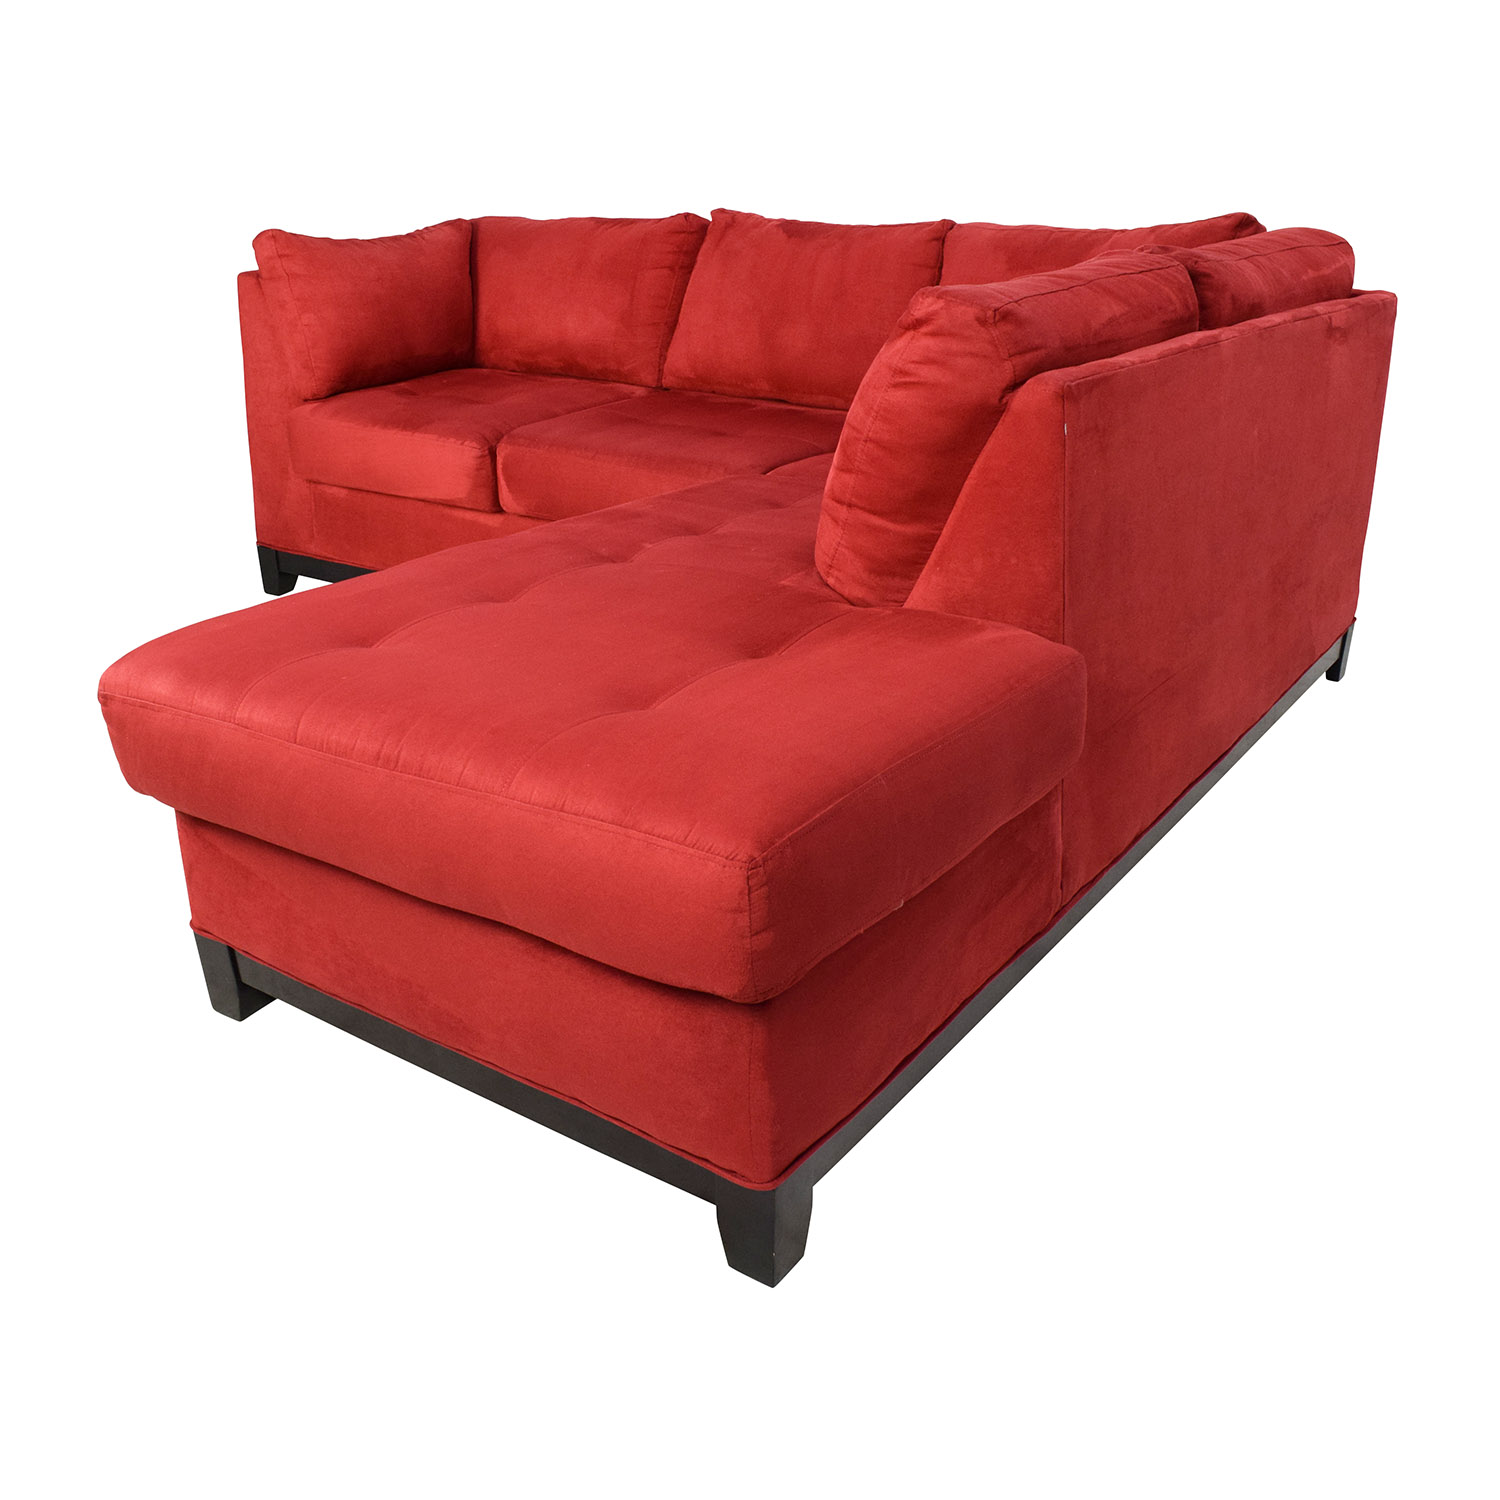 67 Off Raymour And Flanigan Raymour Flanigan Zella Red Sectional Sofas